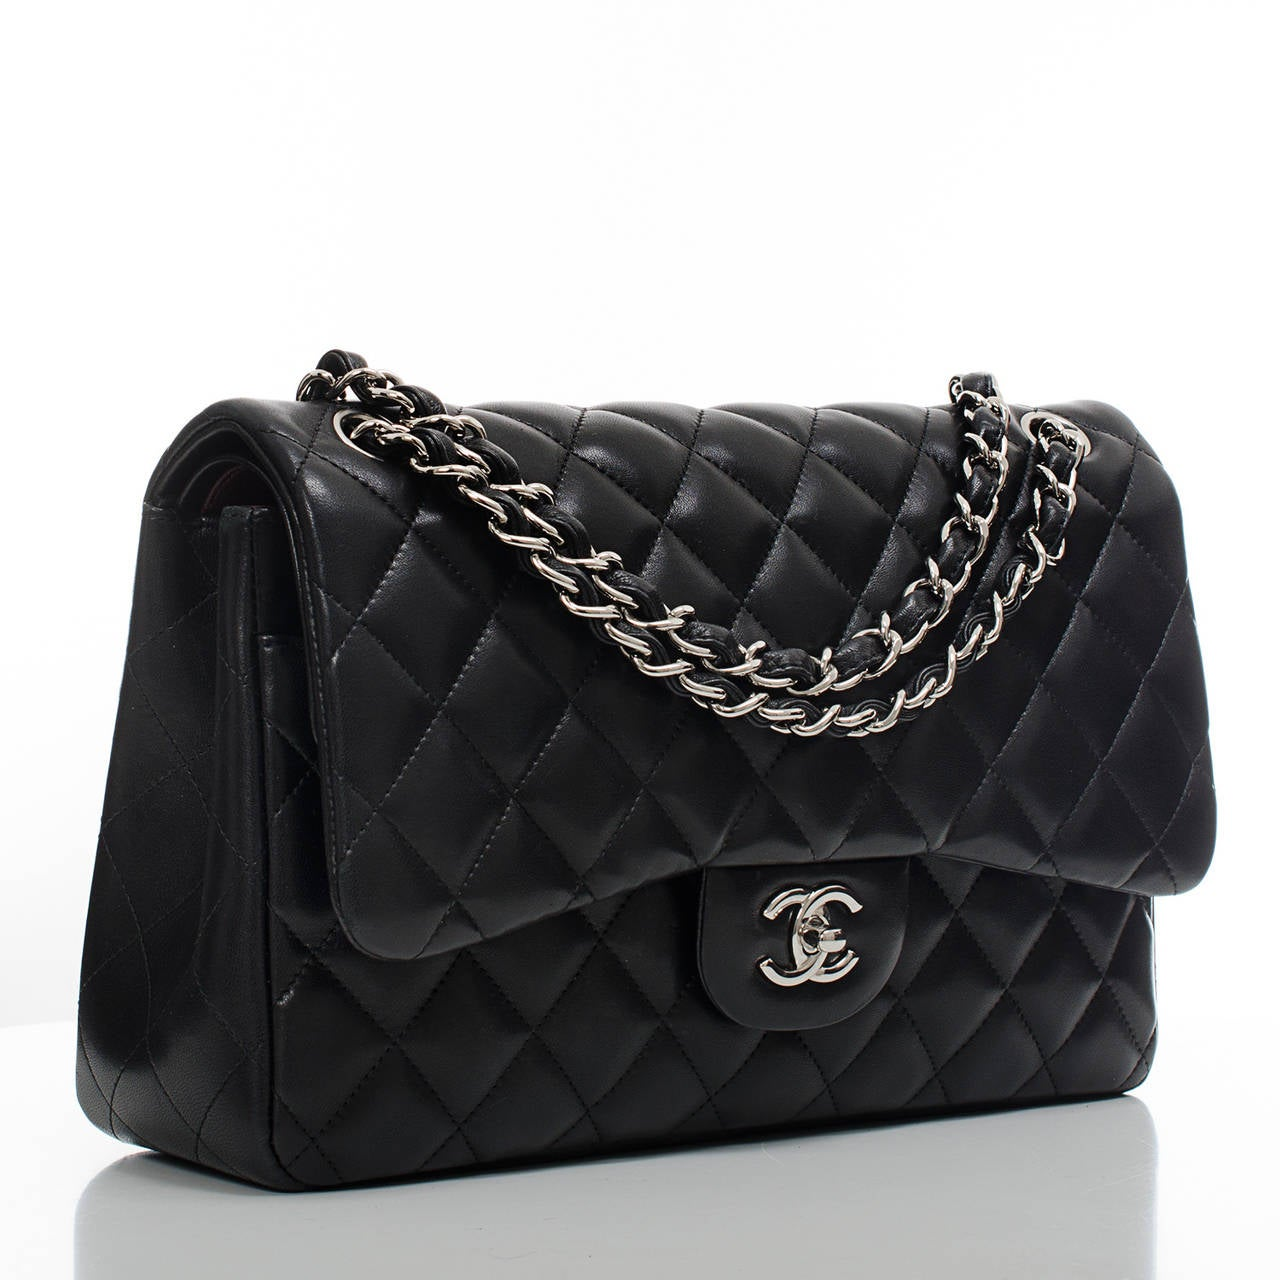 Chanel black Jumbo Classic double flap bag of quilted lambskin leather with silver tone hardware.  This Jumbo Classic double flap of black lambskin features a front flap with signature CC turnlock closure, half moon back pocket and an adjustable